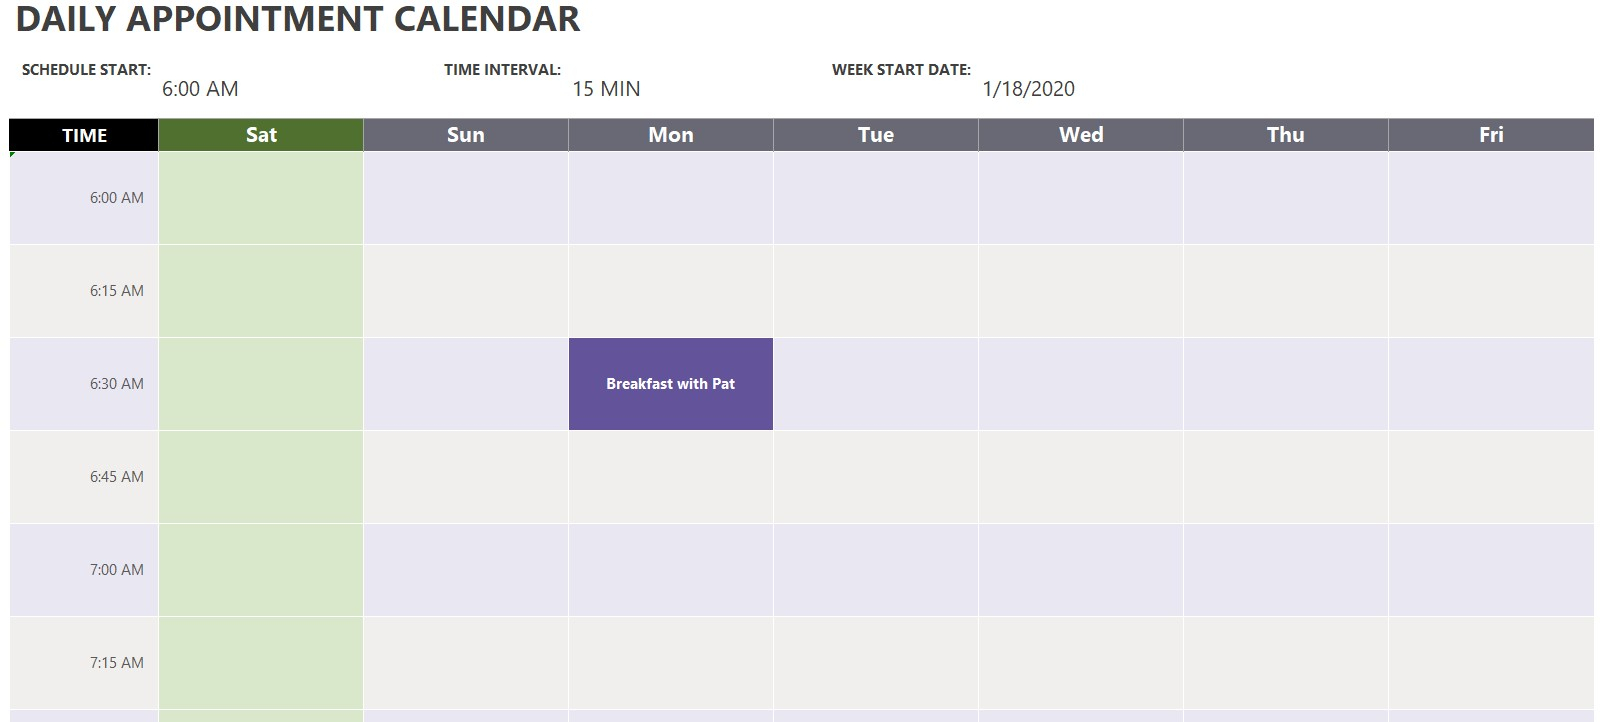 Daily Appointment Calendar Template | Excel Templates in Free Printable Daily Calendar With Time Slots